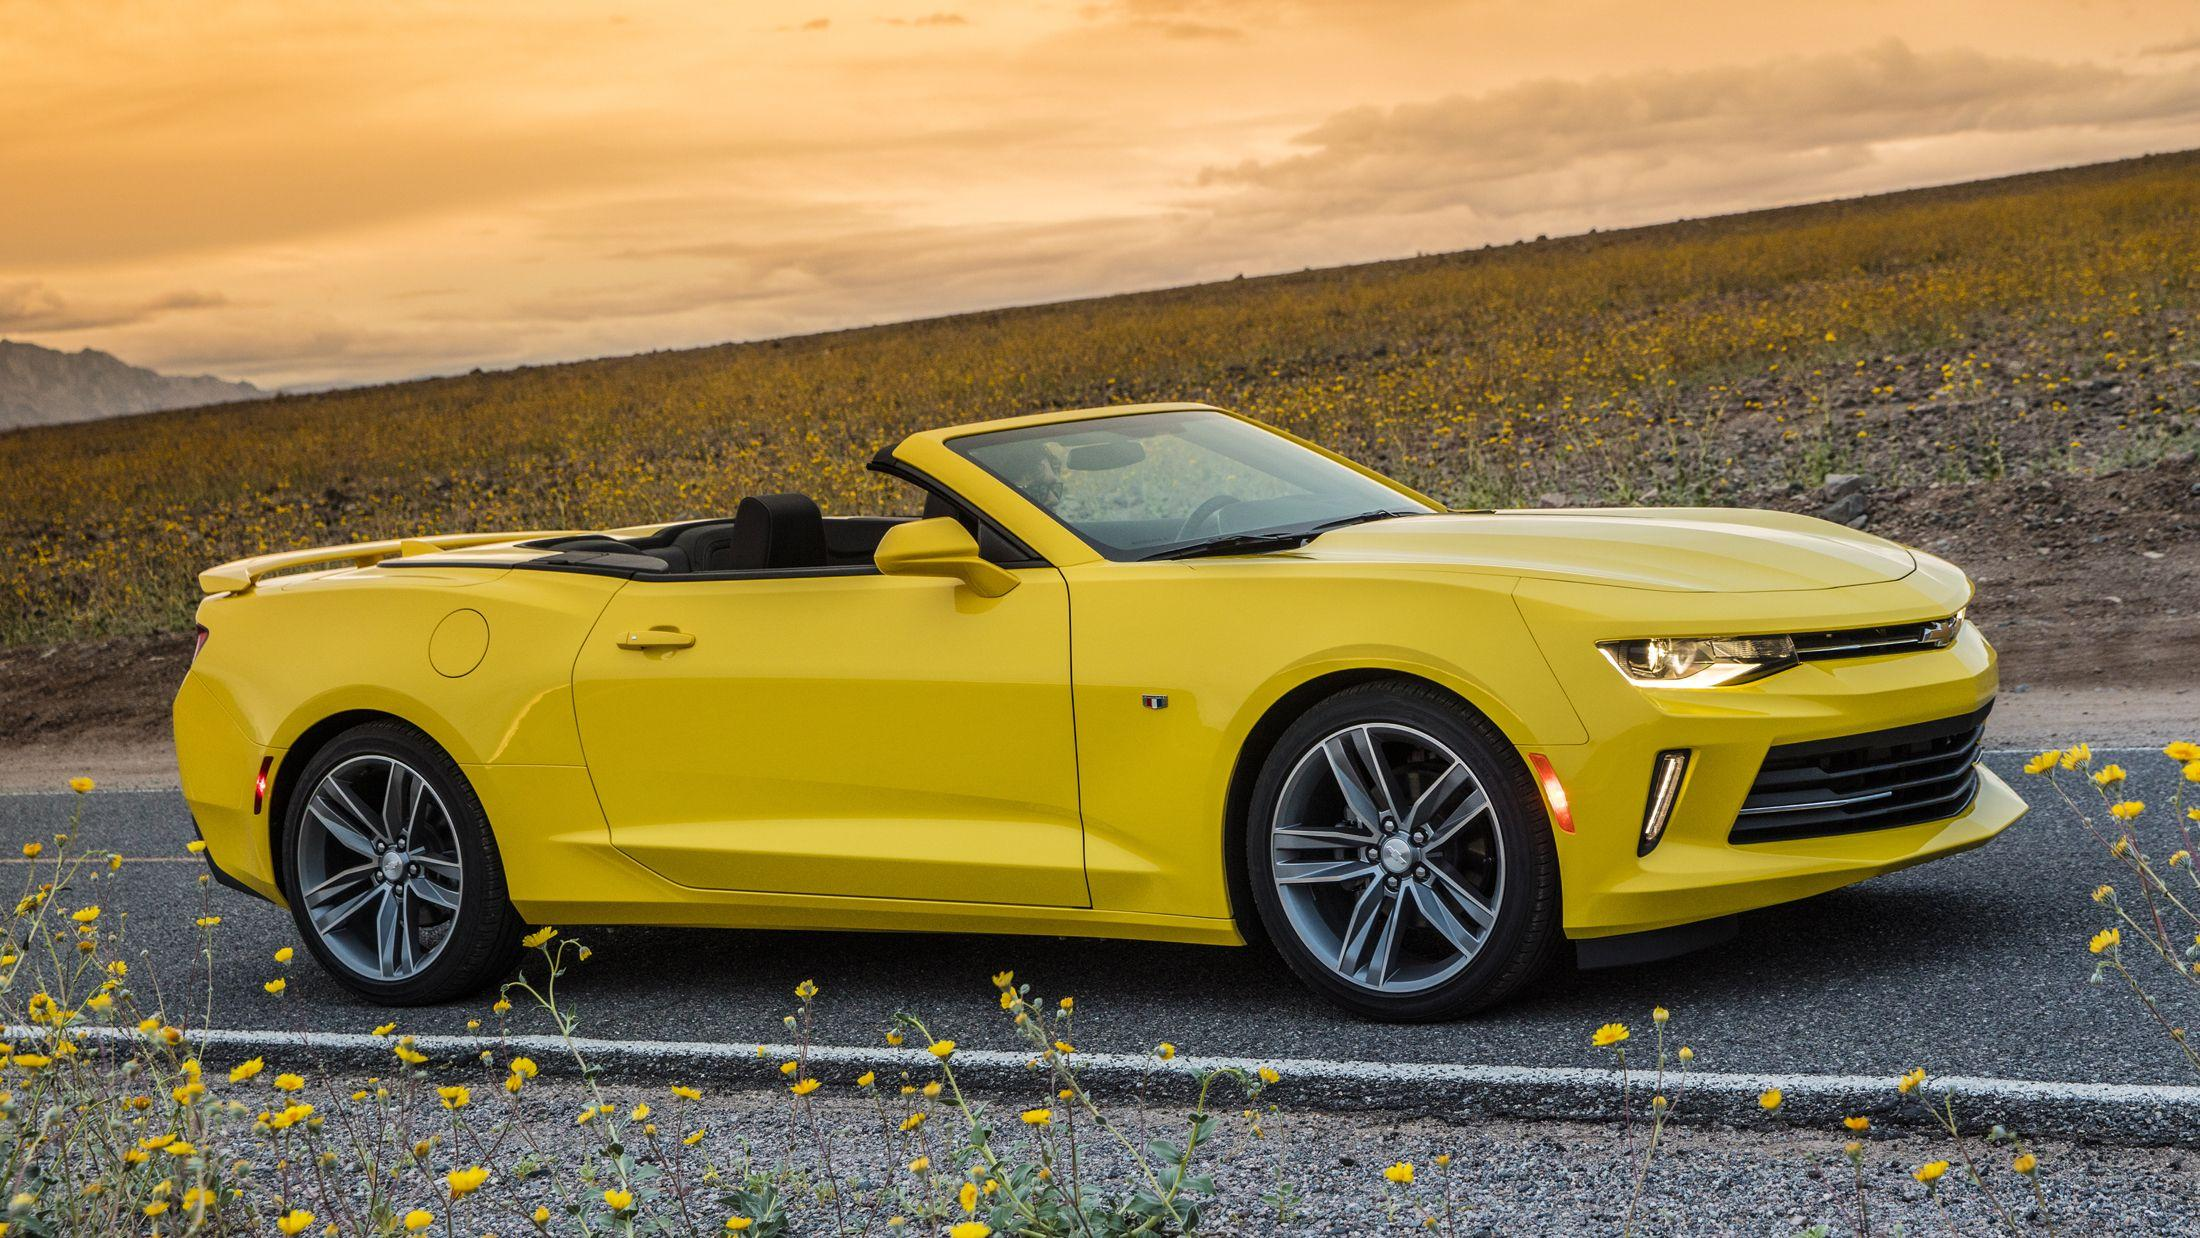 2016 Chevrolet Camaro Convertible 2.0T: Quick Spin Photo Gallery